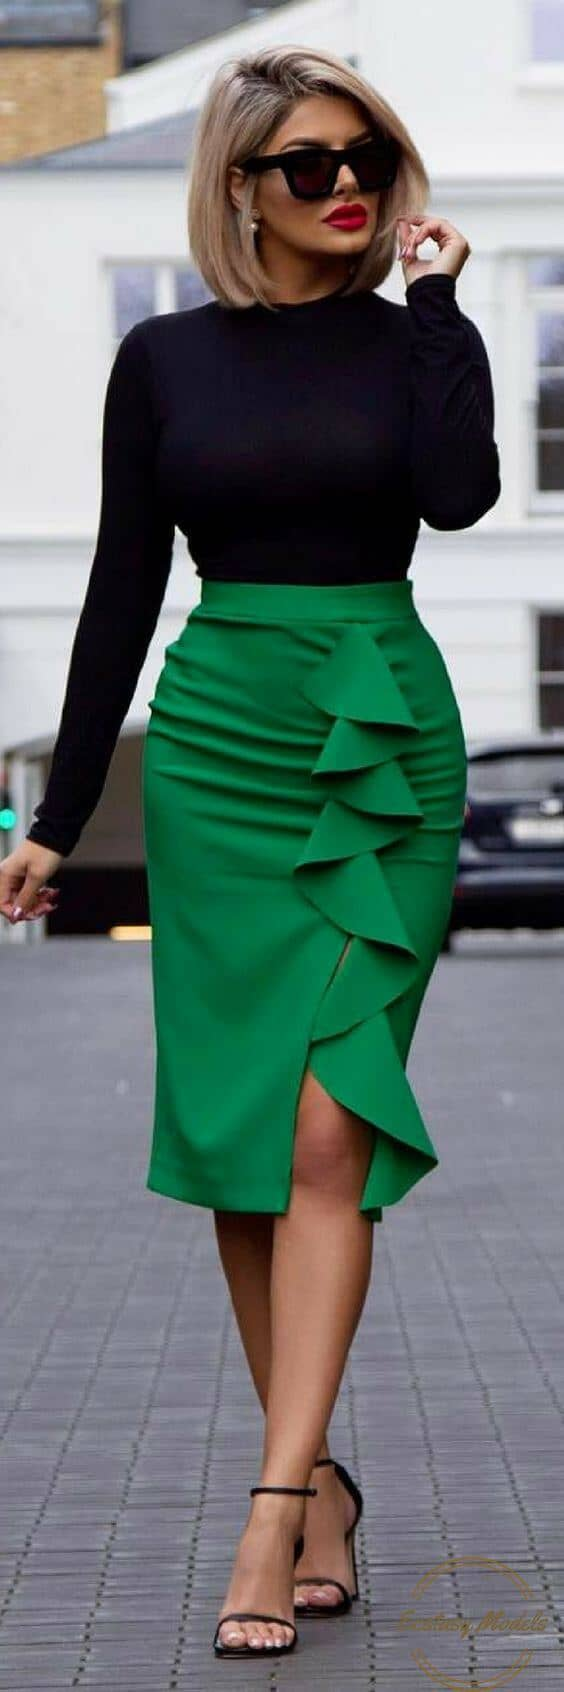 You Can Never Go Wrong With A Colorful Pencil Skirt